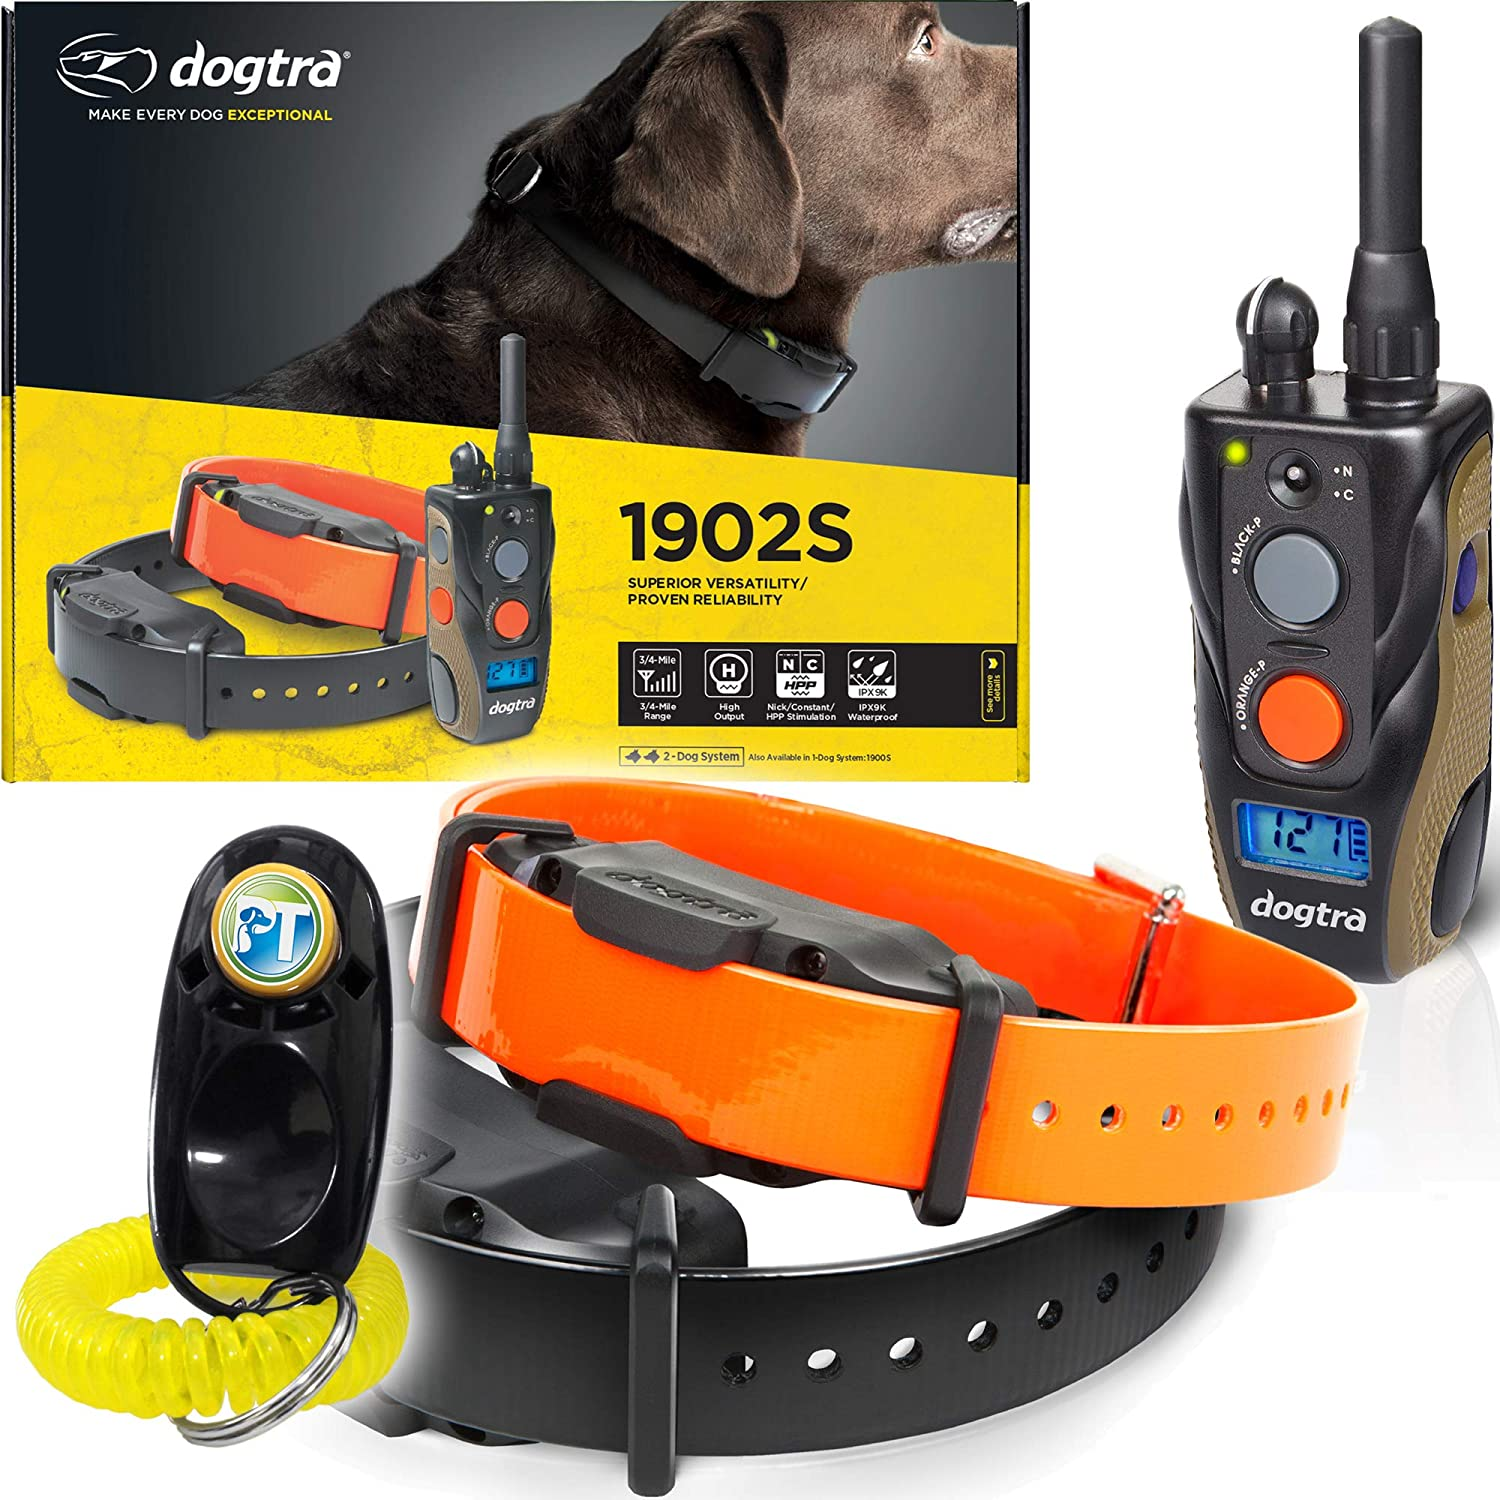 Dogtra 1900S / 1902S Remote Training Collar - 3/4 Mile Range, Waterproof, Rechargeable, Vibration - Includes PetsTEK Dog Training Clicker